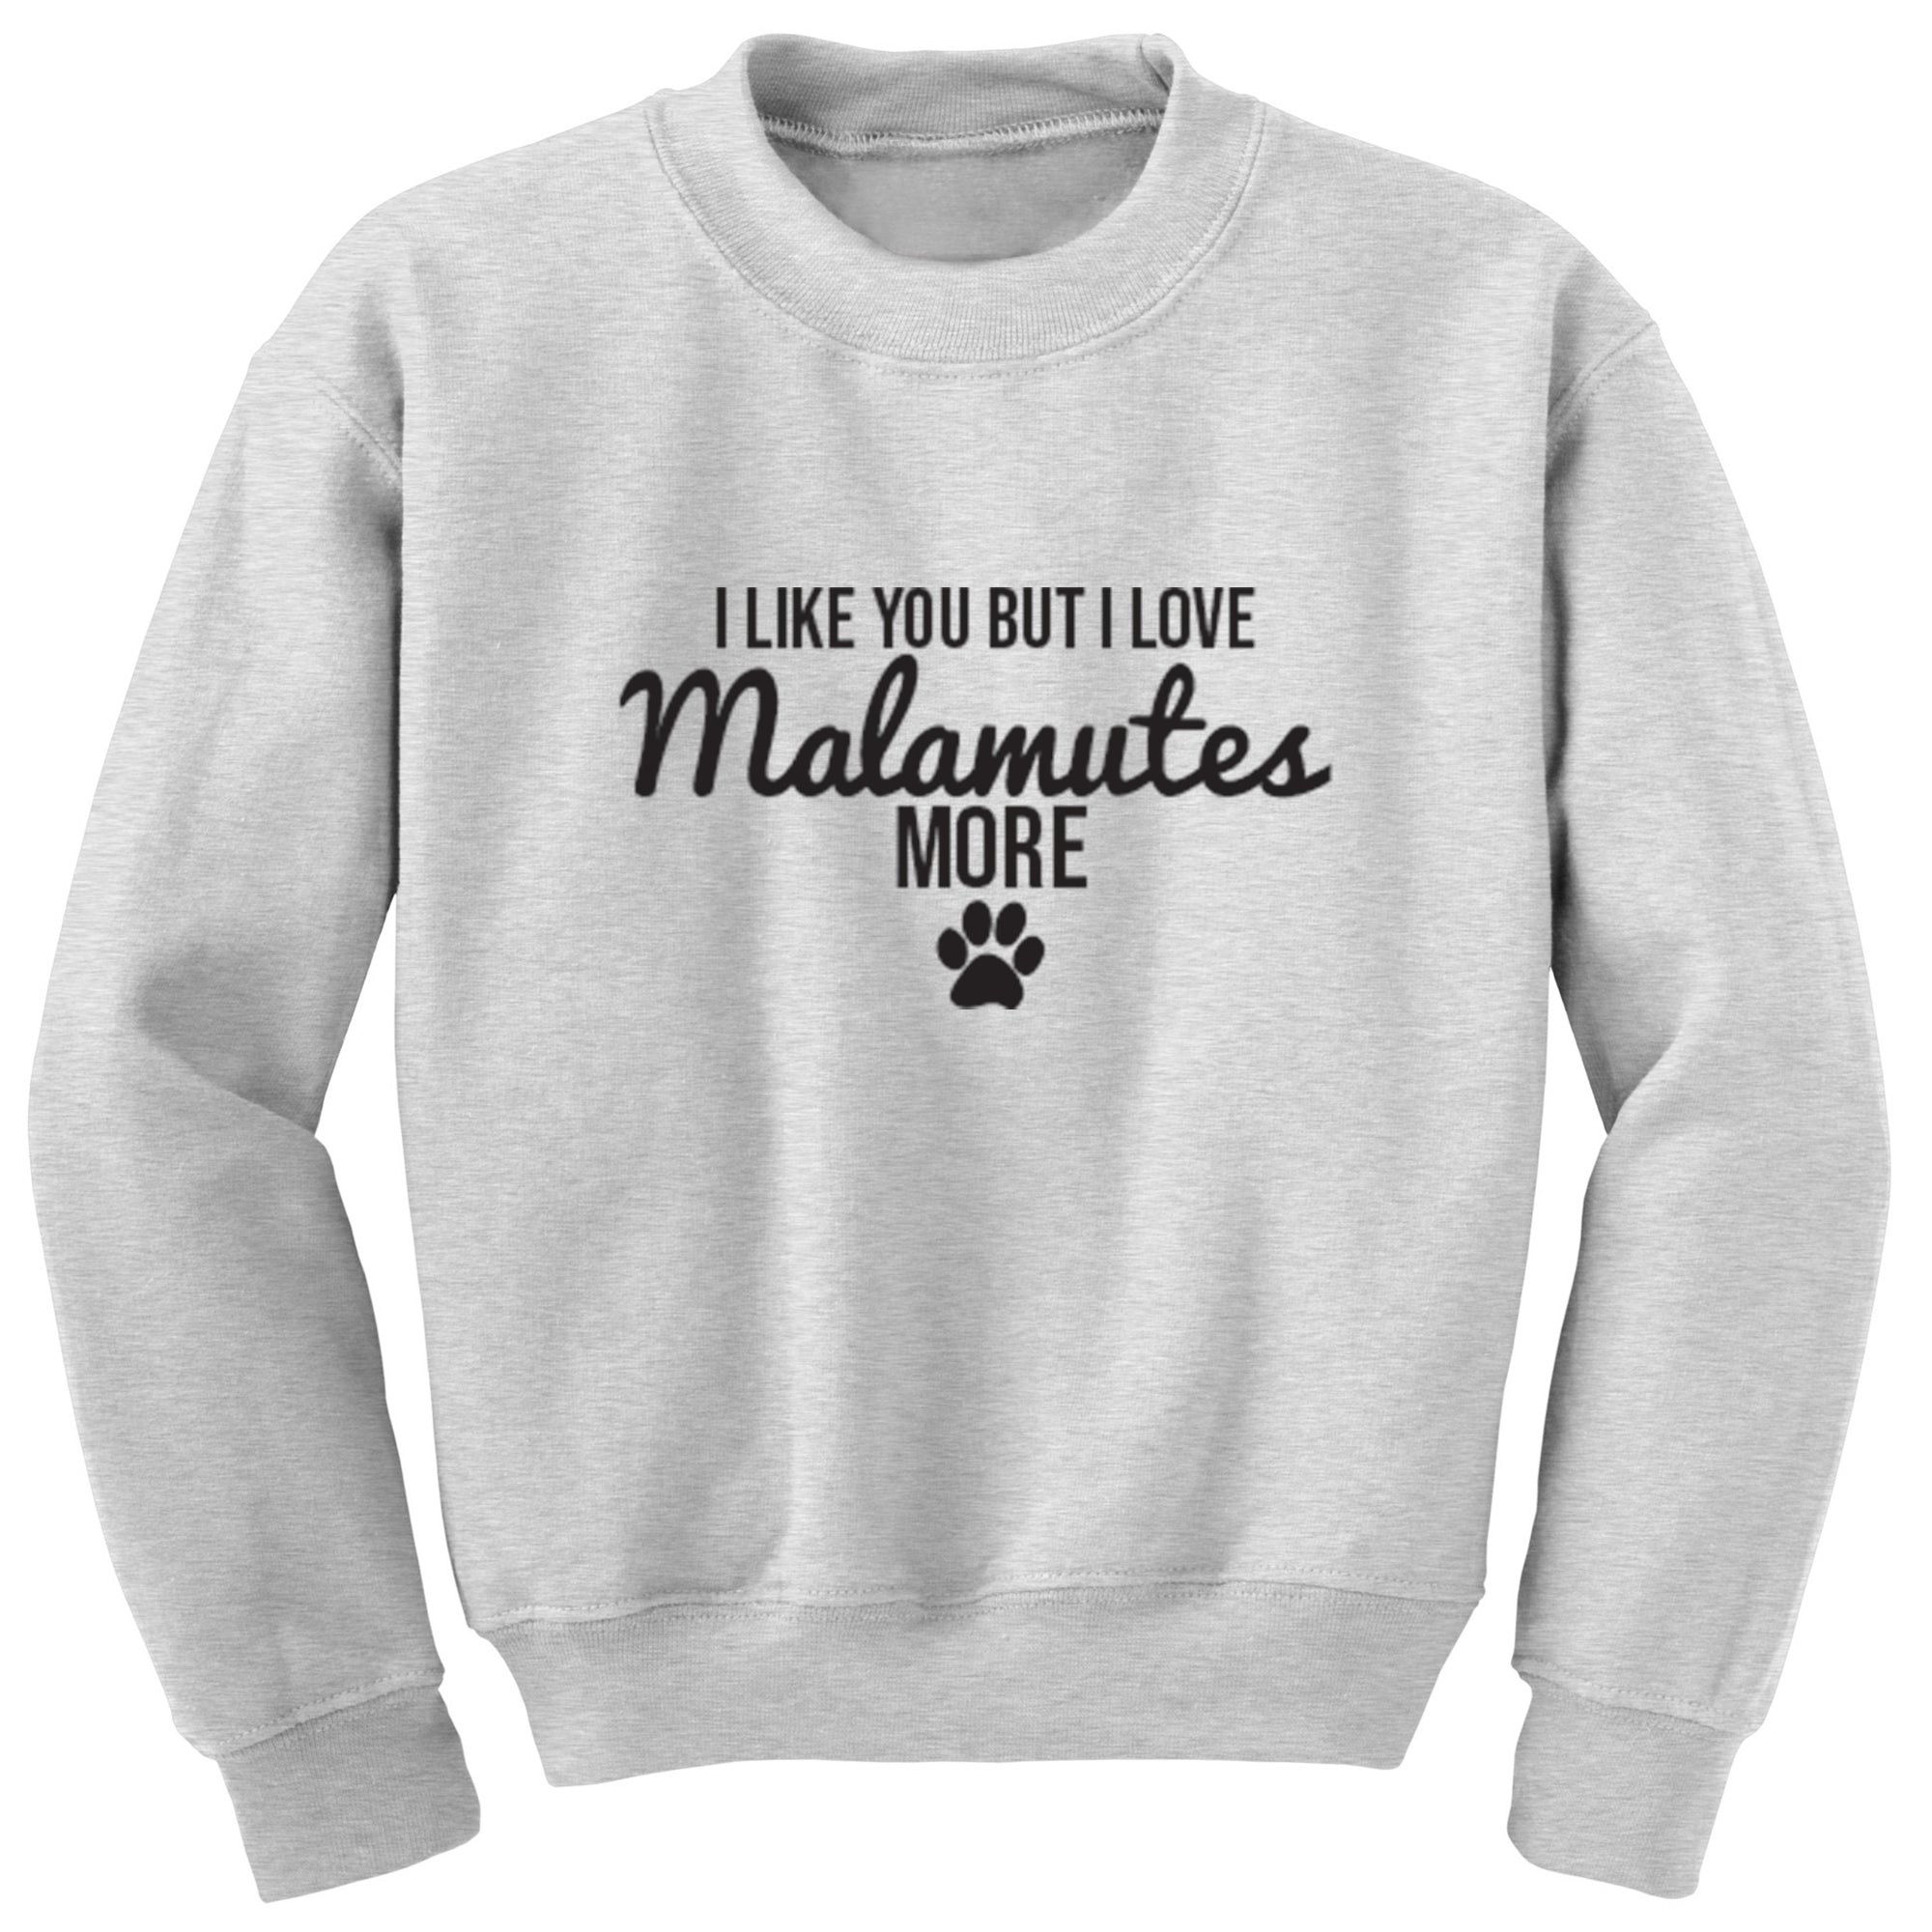 I Like You But I Love Malamutes More Unisex Jumper S0097 - Illustrated Identity Ltd.